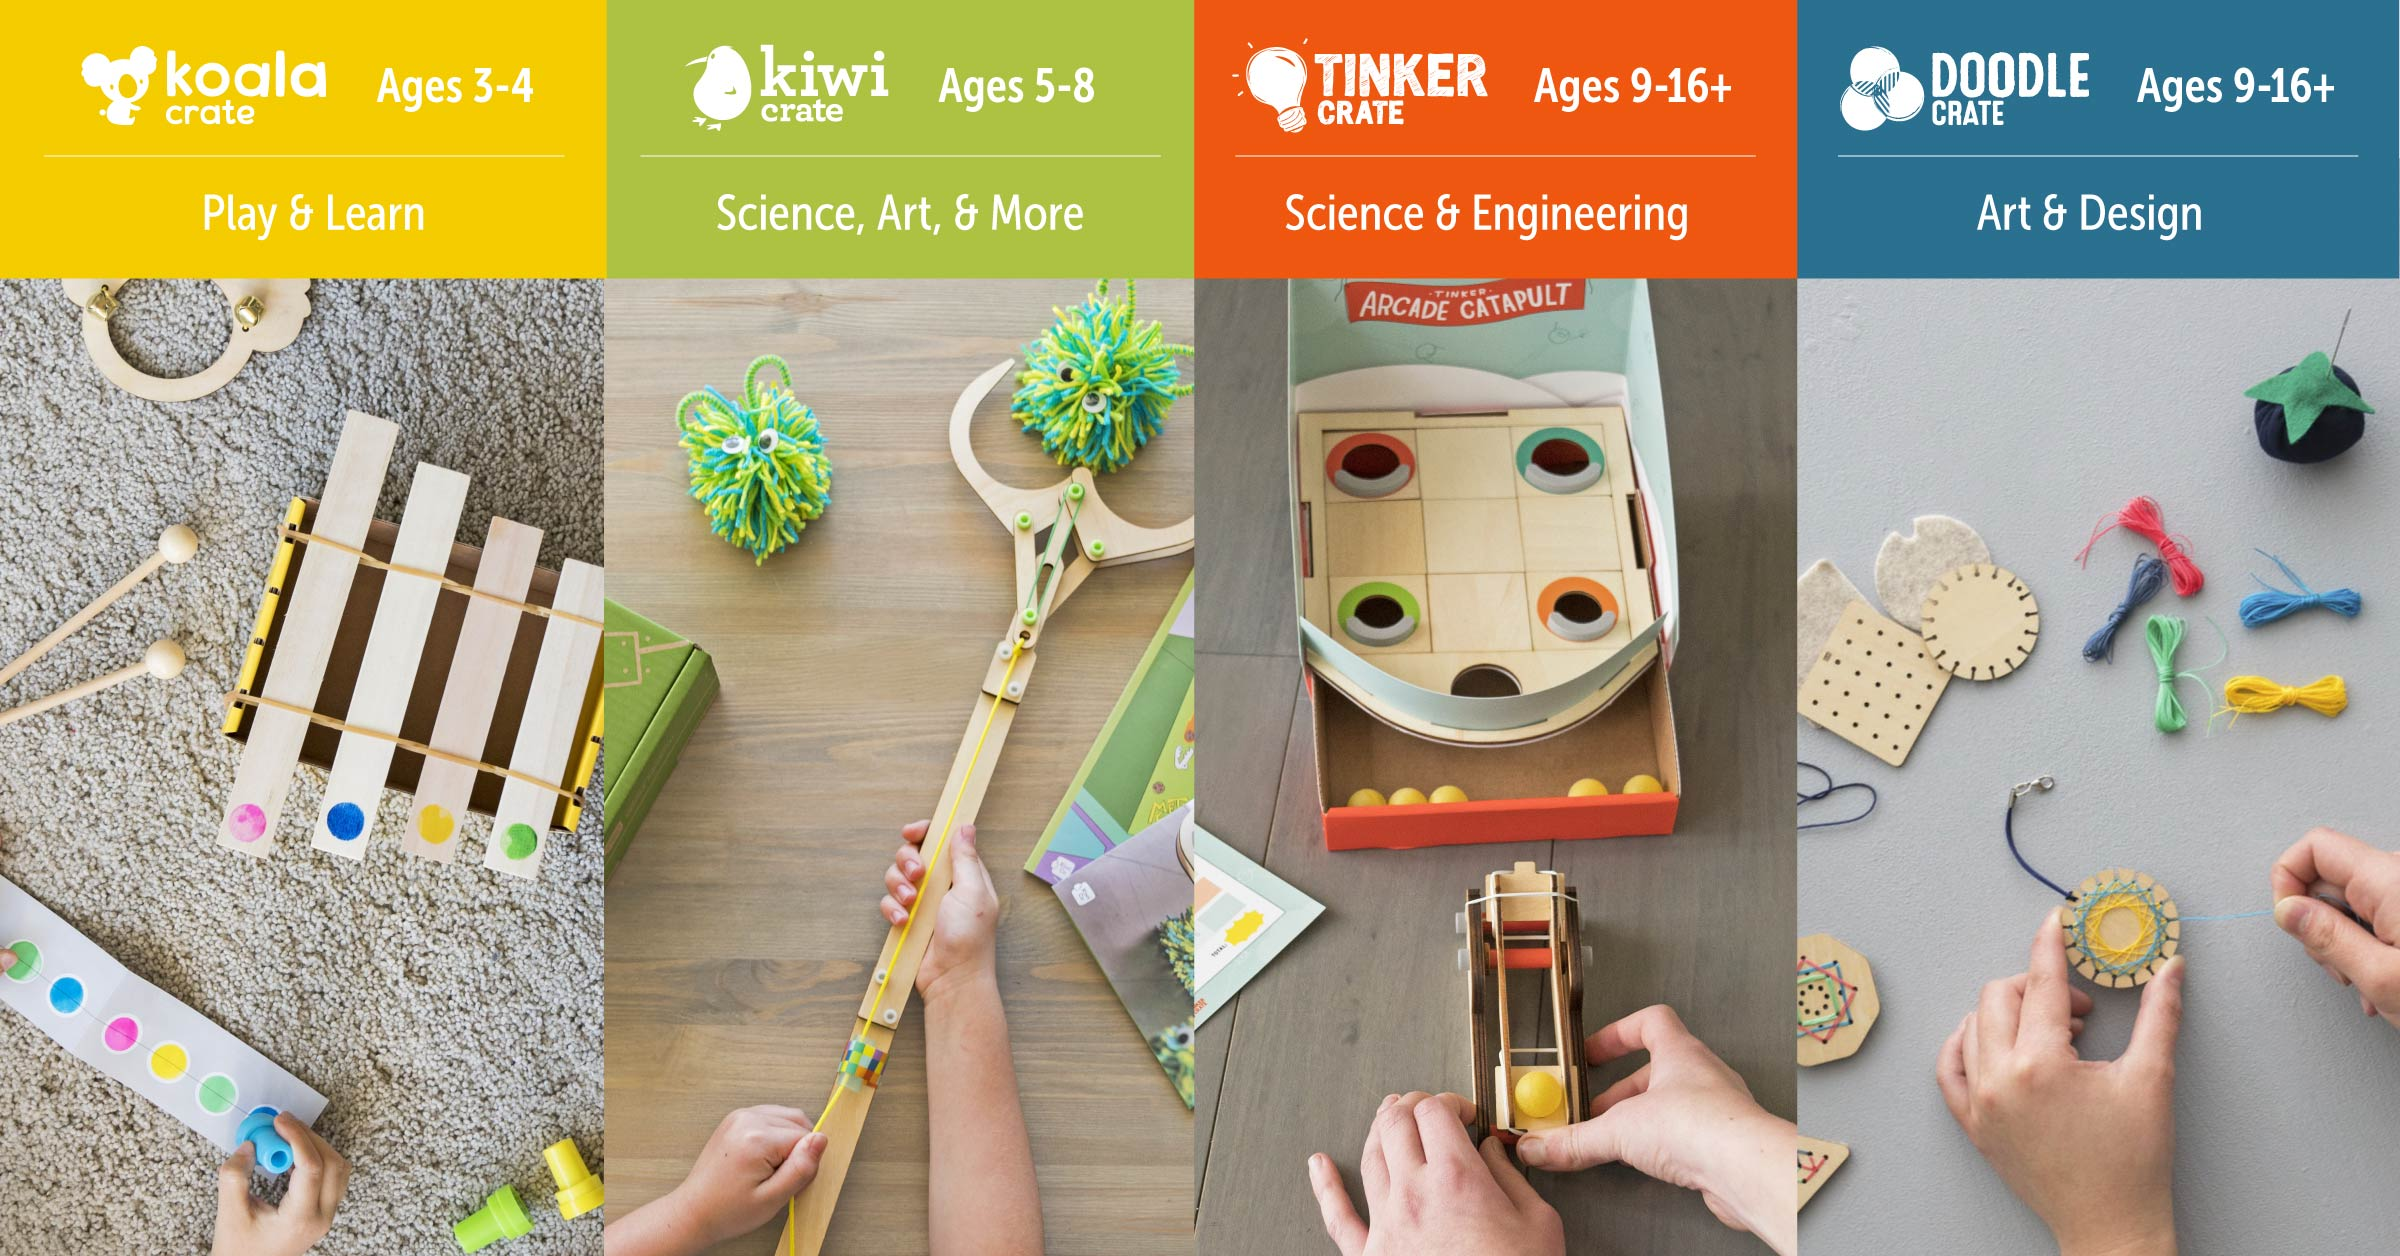 Crafts and Classic Games to Keep Kids Busy (and parents sane) during Social Distancing